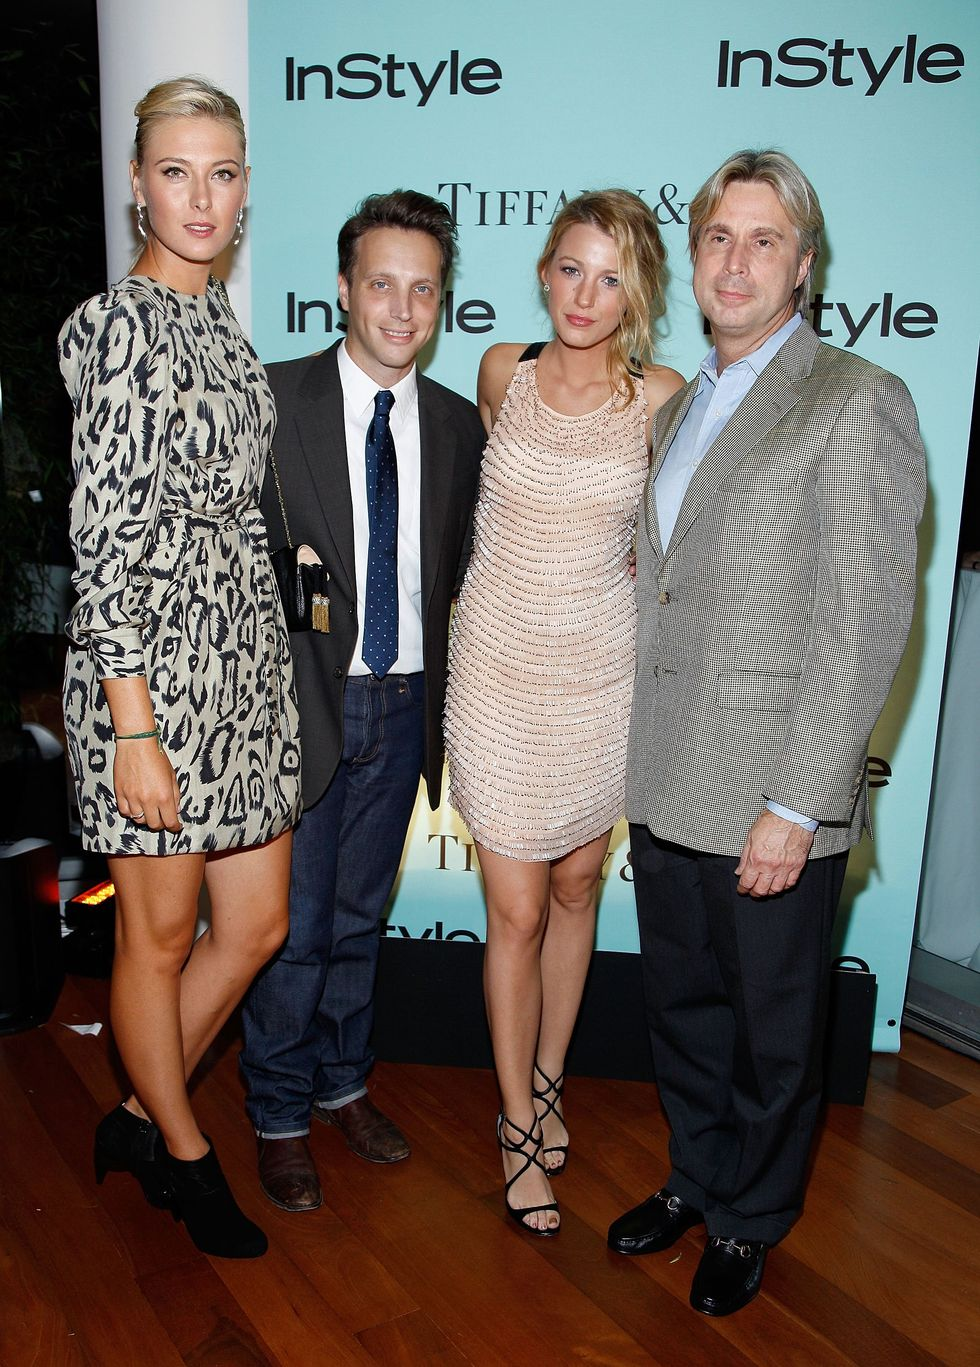 blake-lively-tiffany-and-instyle-honor-maria-sharapova-and-frank-gehry-event-01